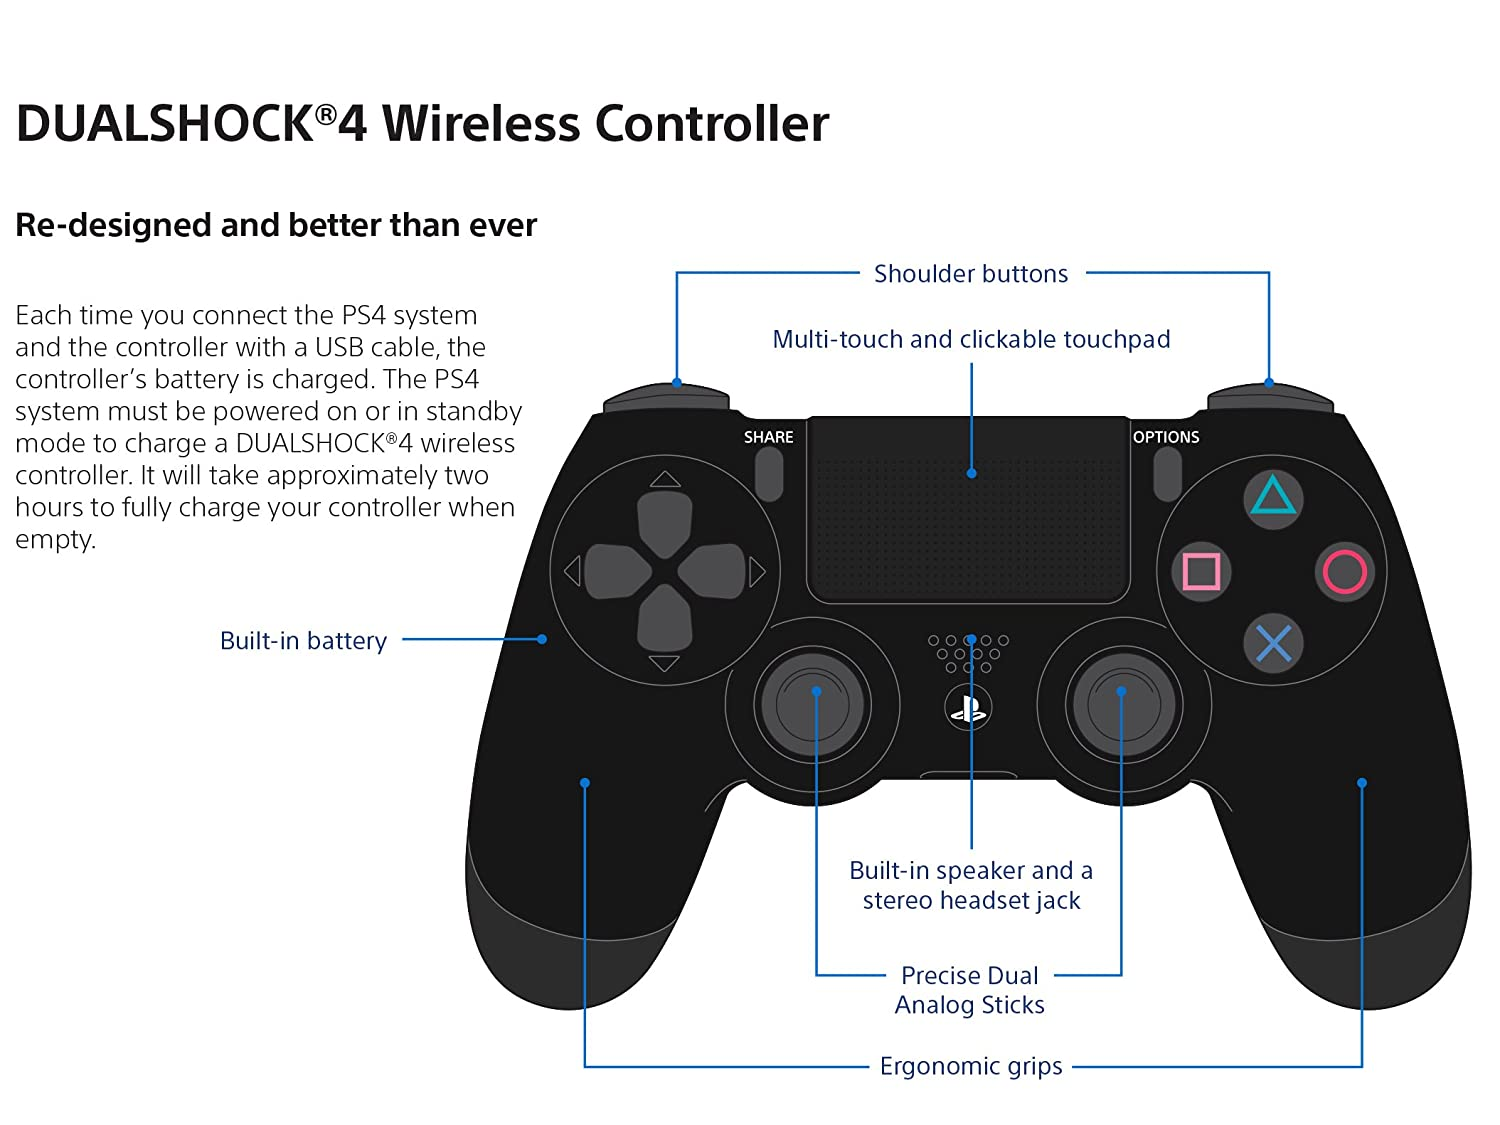 Amazon.com: DualShock 4 Wireless Controller for PlayStation 4 - Glacier  White [Old Model]: Video Games